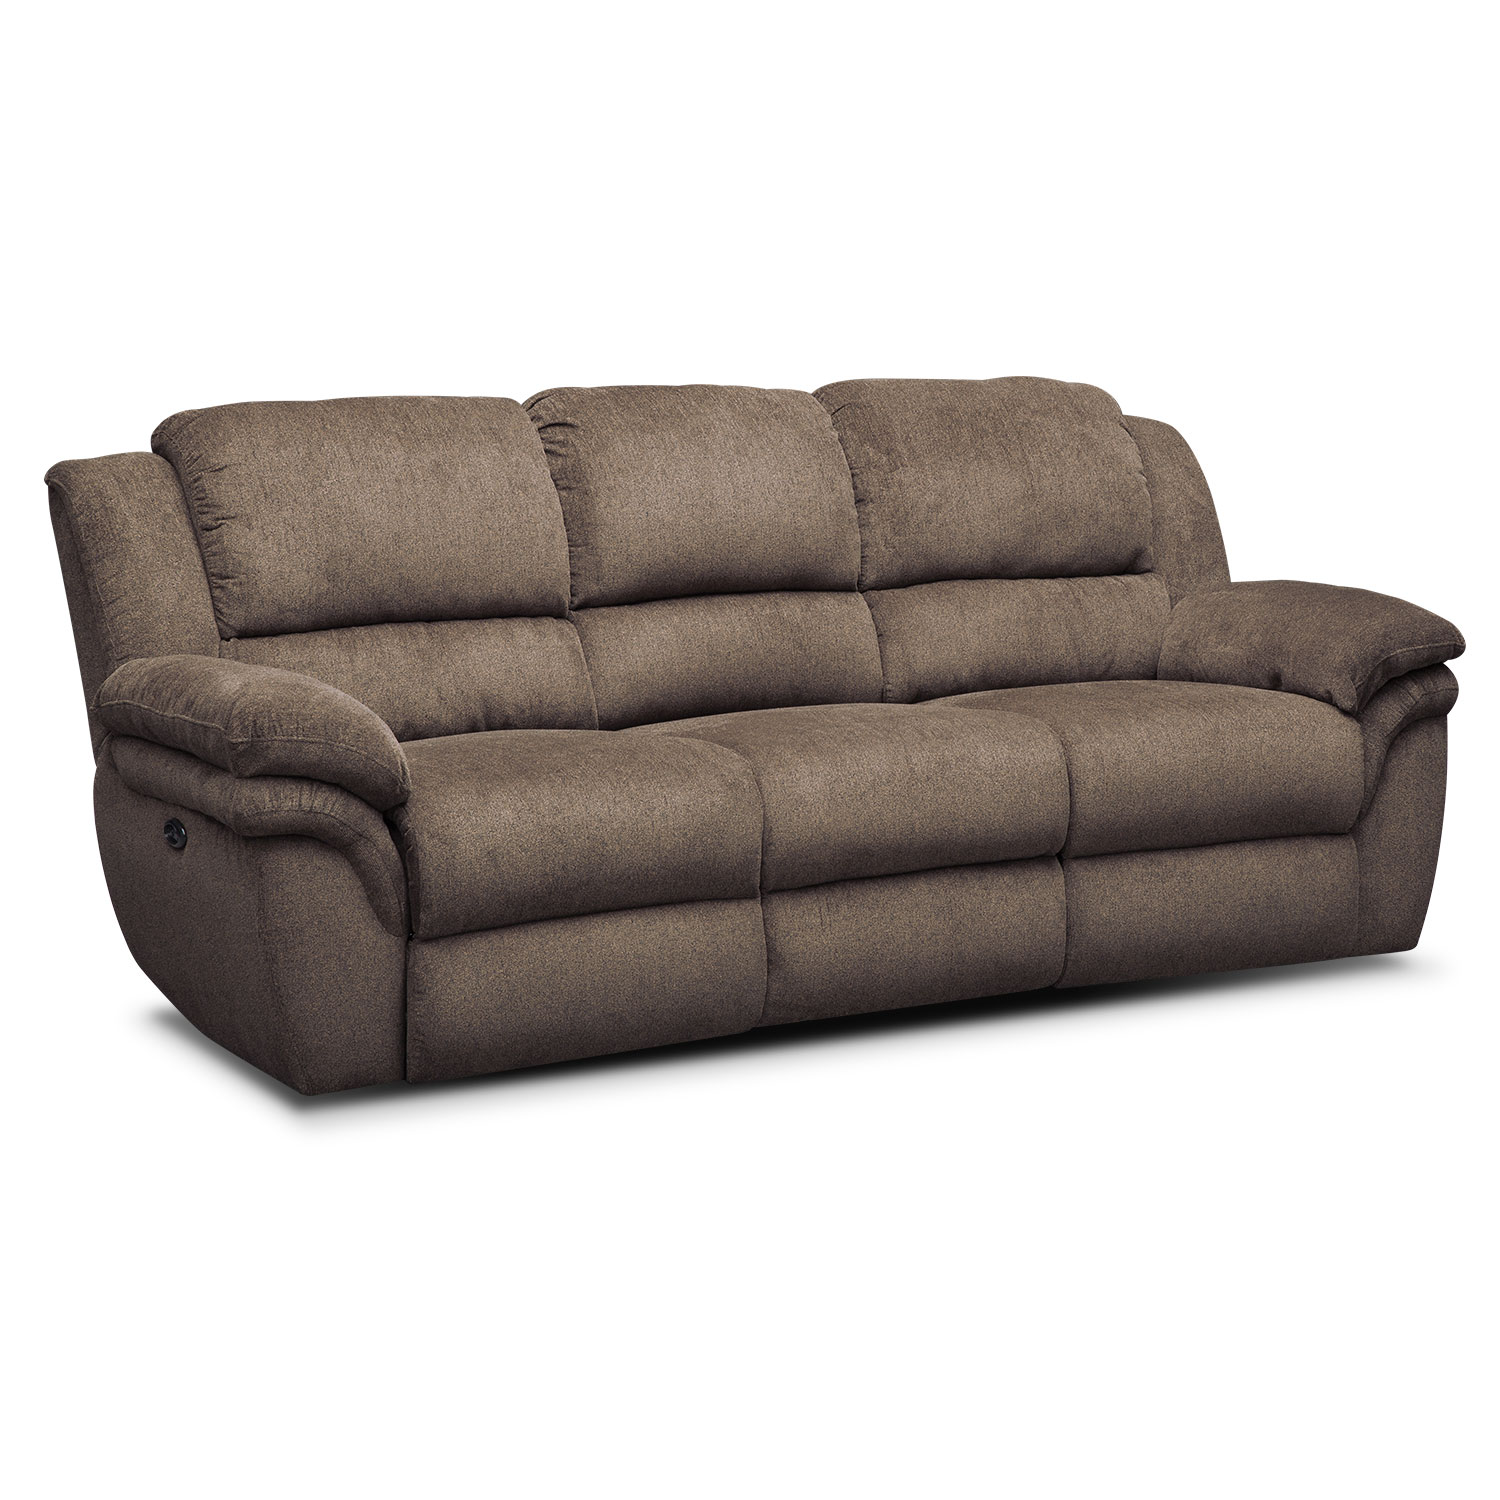 Aldo power reclining sofa loveseat and recliner set Power reclining sofas and loveseats